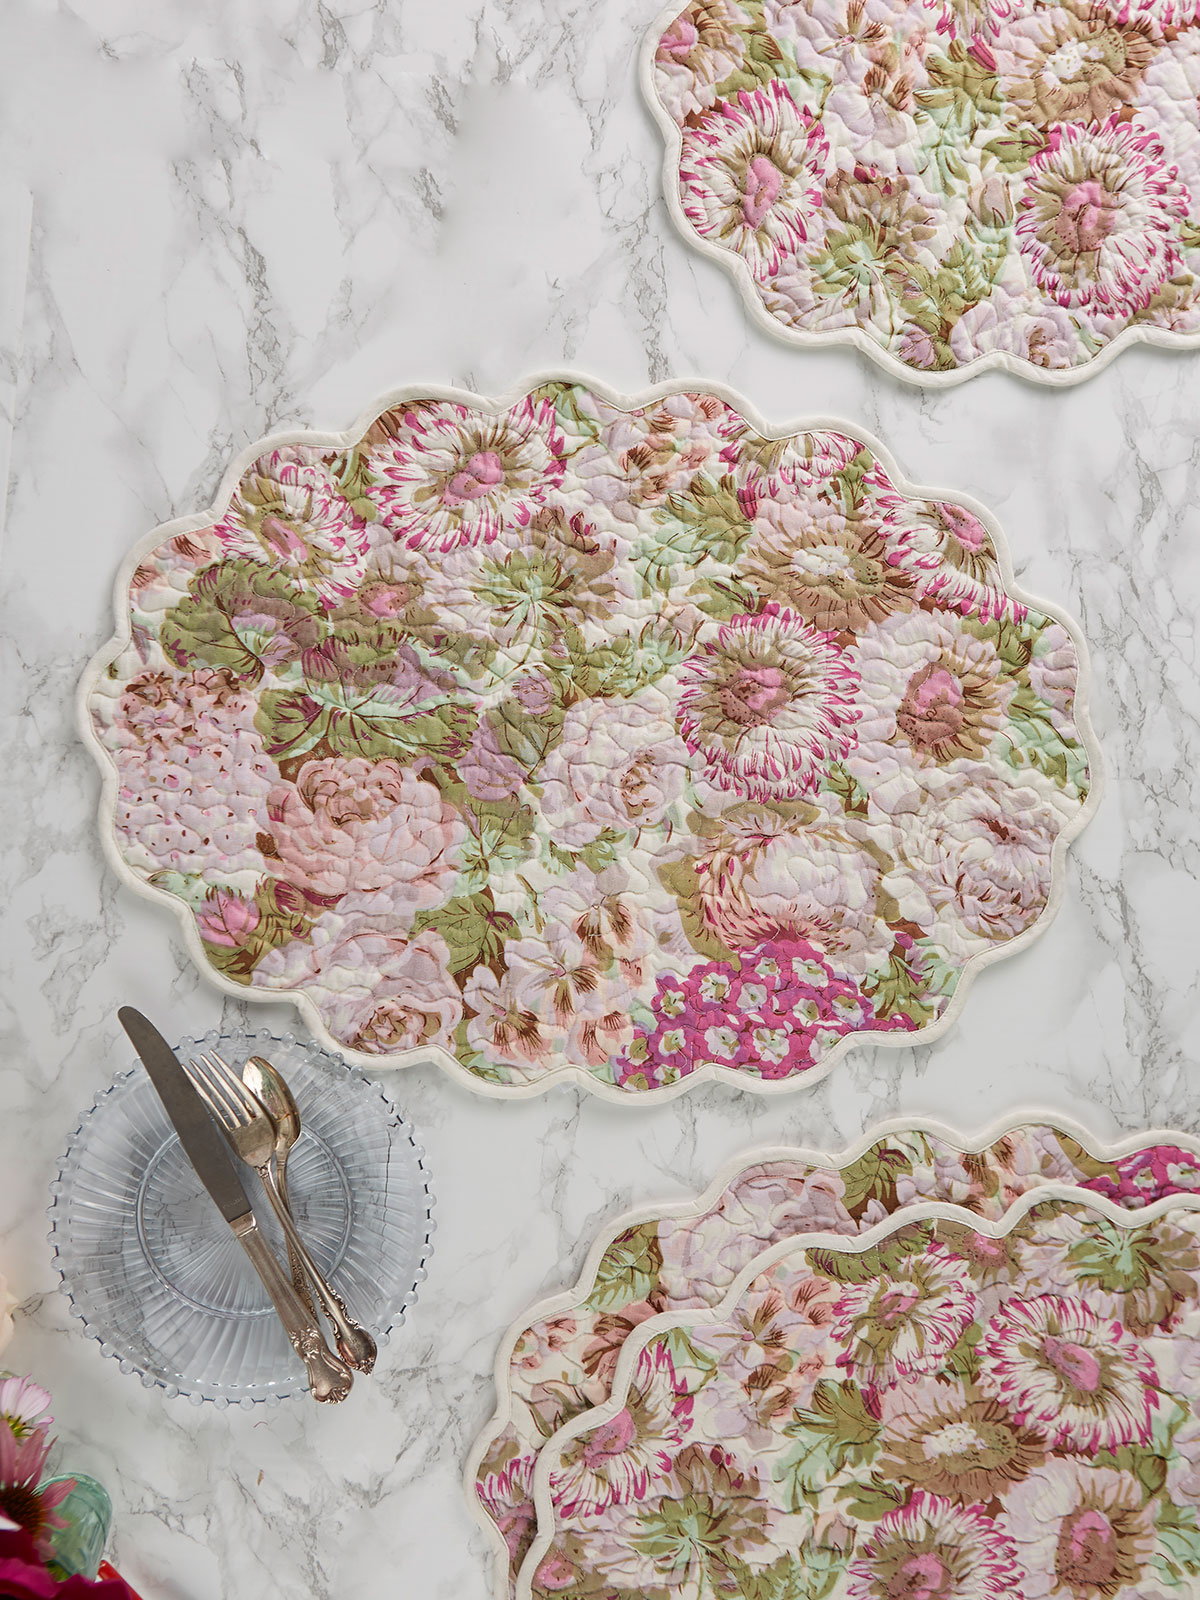 Spring Gathering Quilted Placemat Set of 4